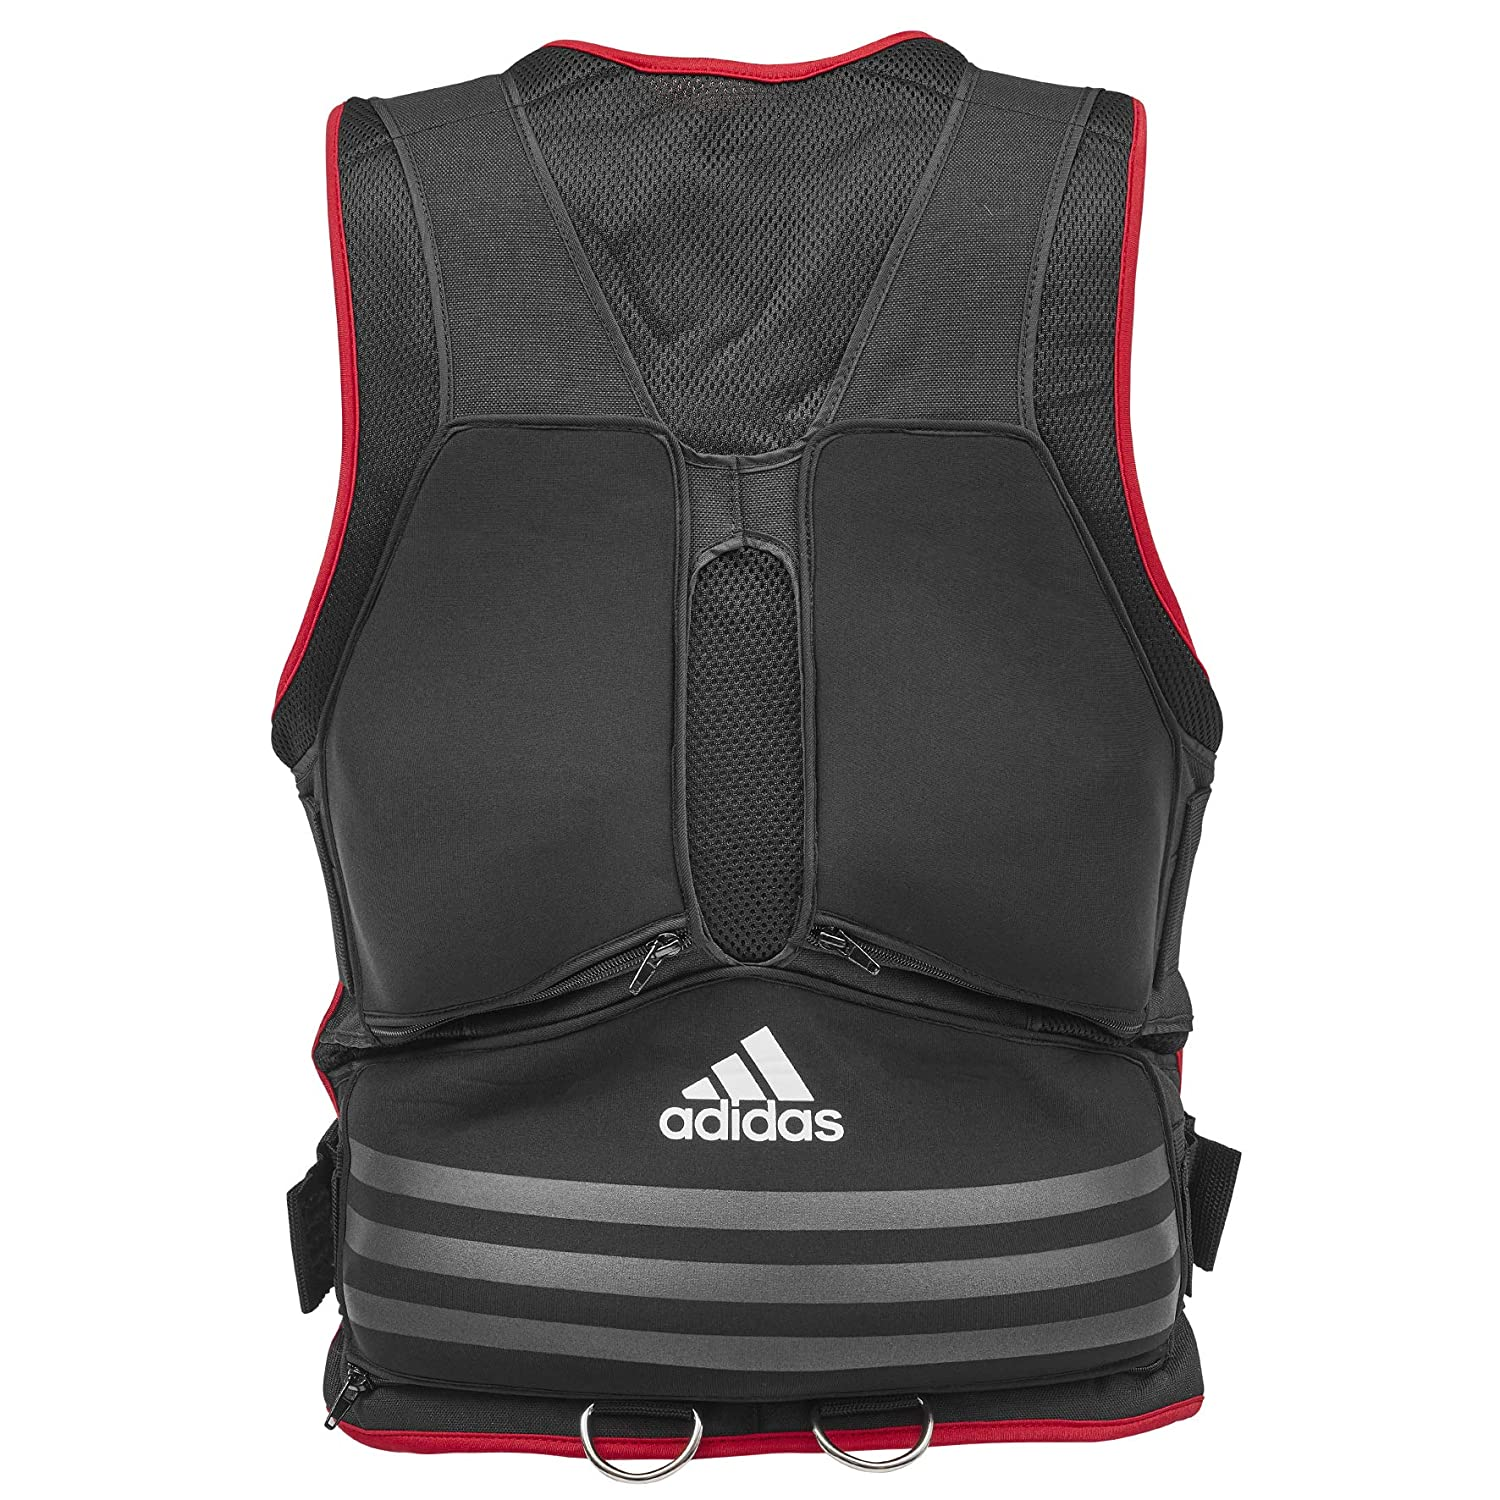 on sale 0b6b2 51017 adidas Gilet Pesi Full Body  Amazon.it  Sport e tempo libero